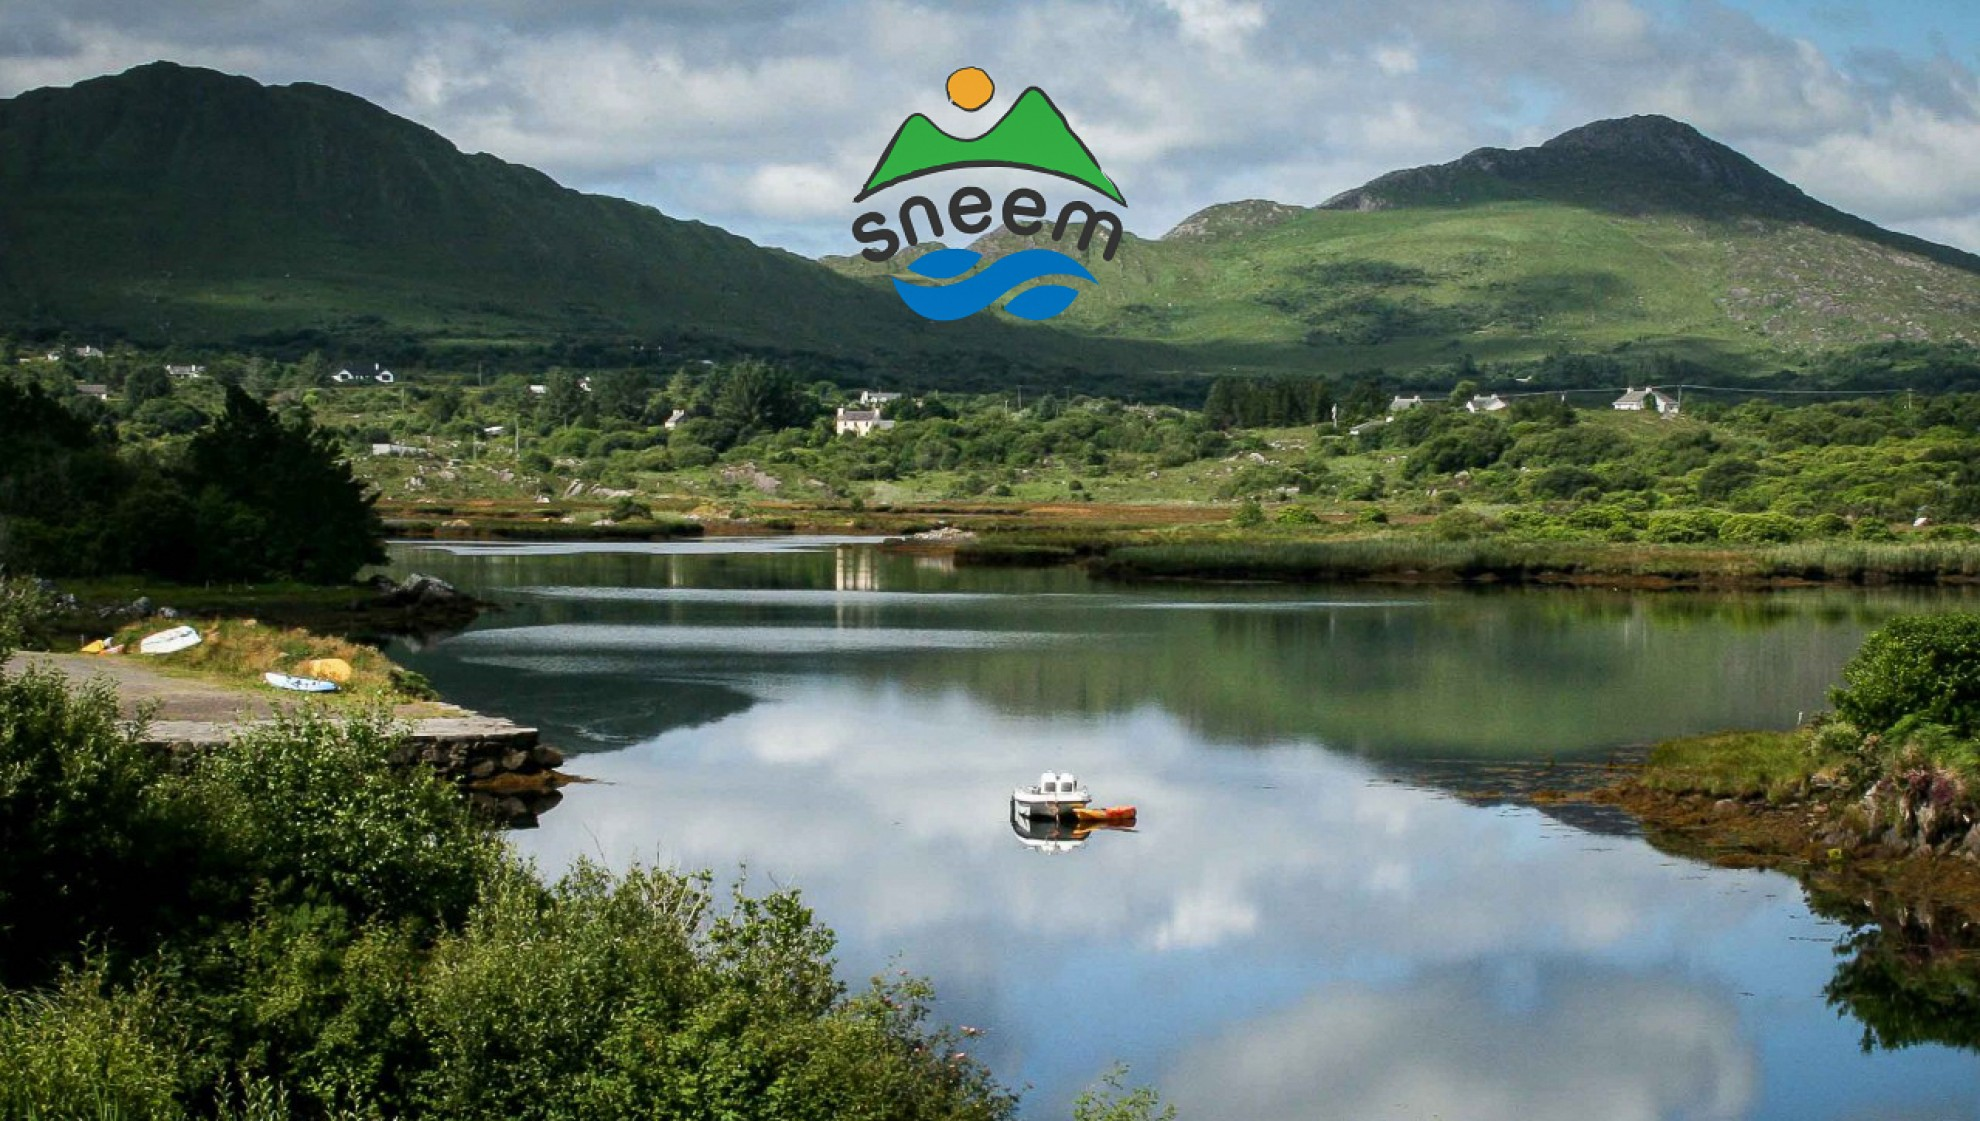 Golden's Cove Sneem